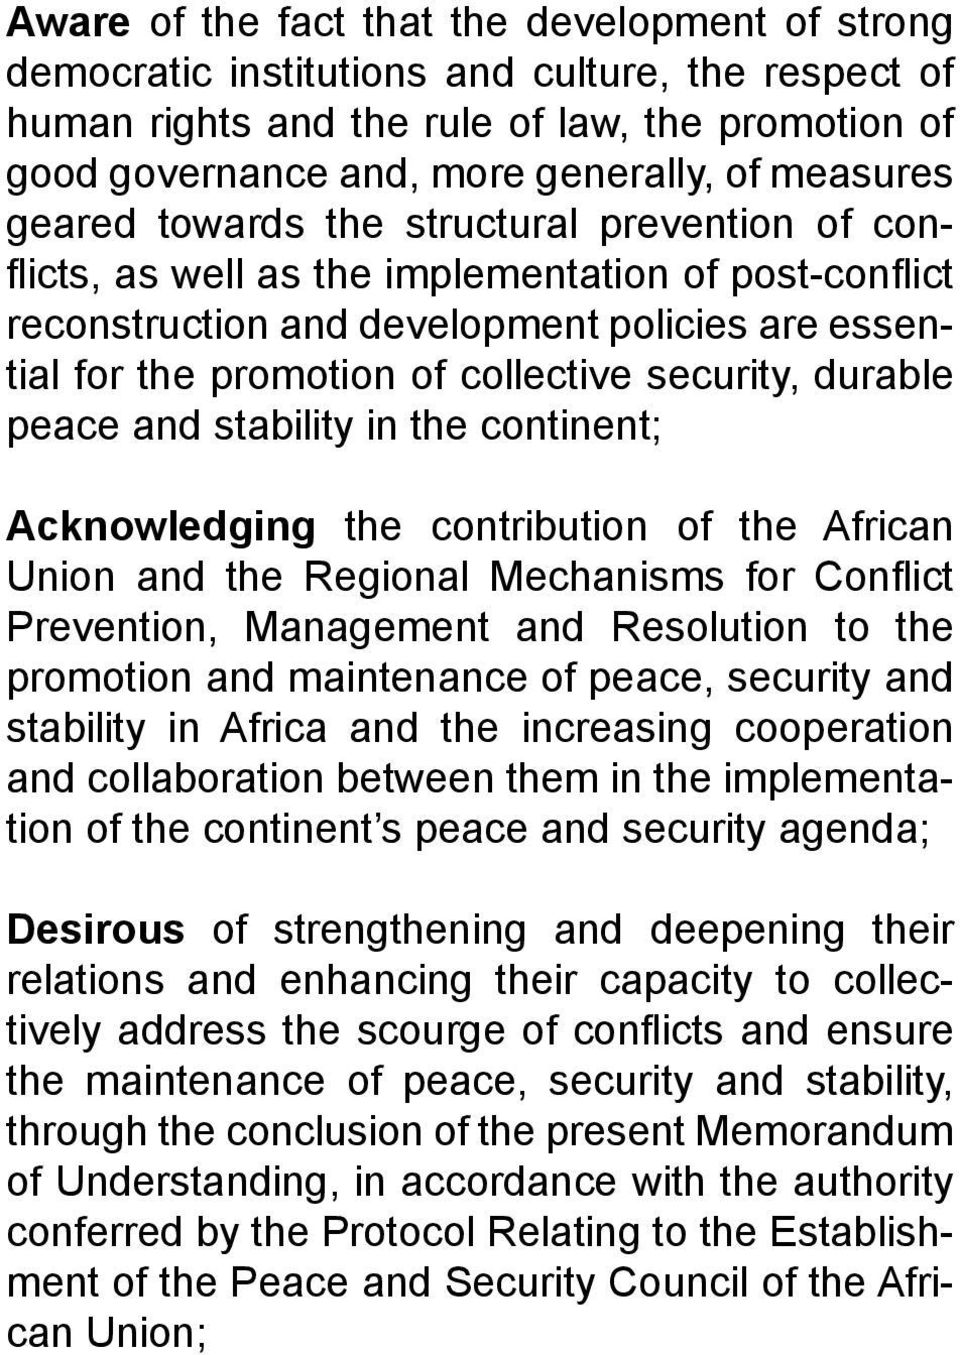 security, durable peace and stability in the continent; Acknowledging the contribution of the African Union and the Regional Mechanisms for Conflict Prevention, Management and Resolution to the